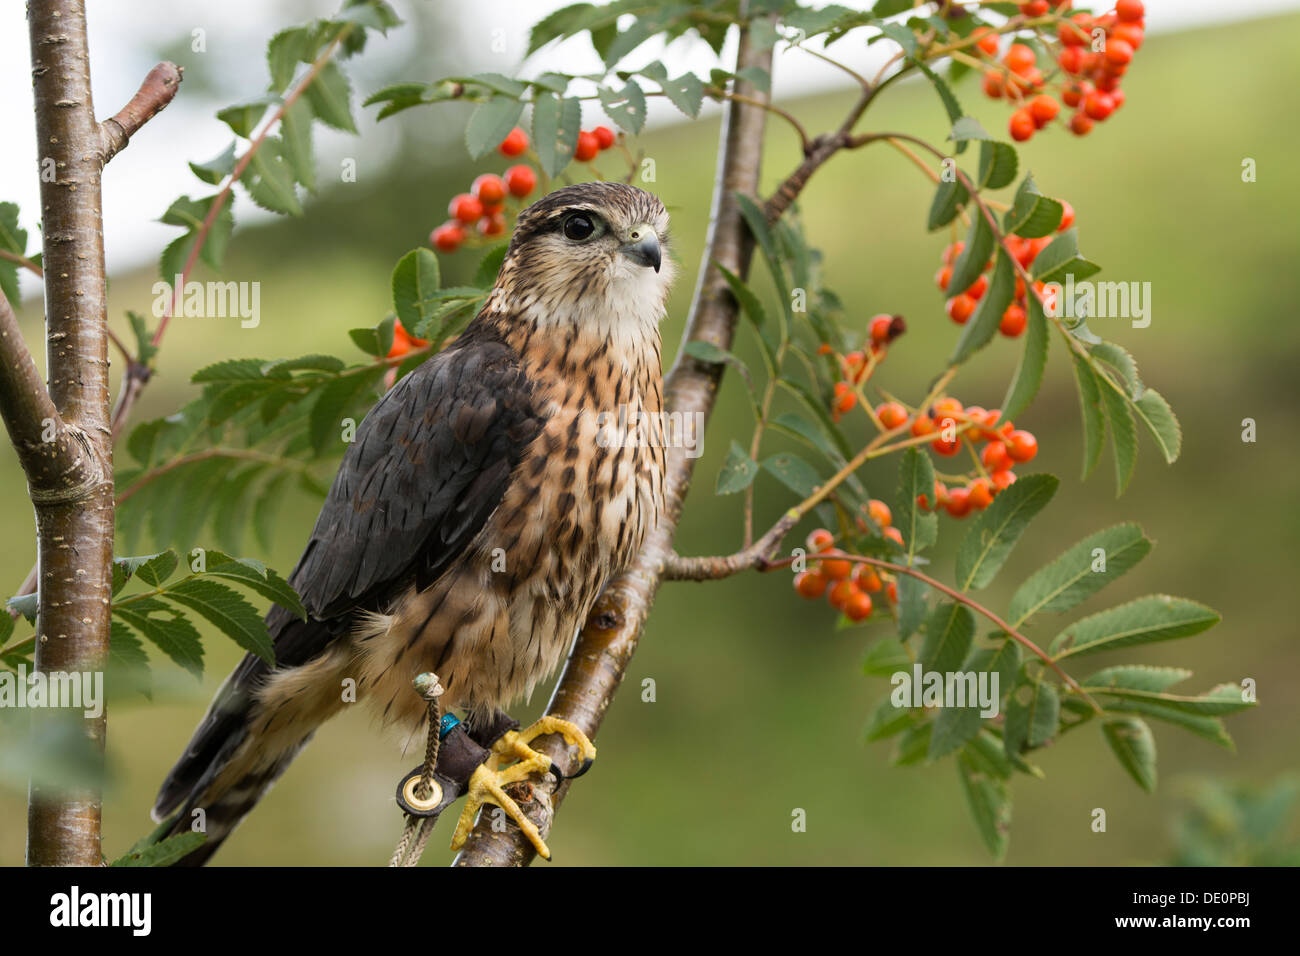 Captive Merlin ( Falco columbarius) perched in a Mountain Ash tree with berries on. Yorkshire, UK. - Stock Image